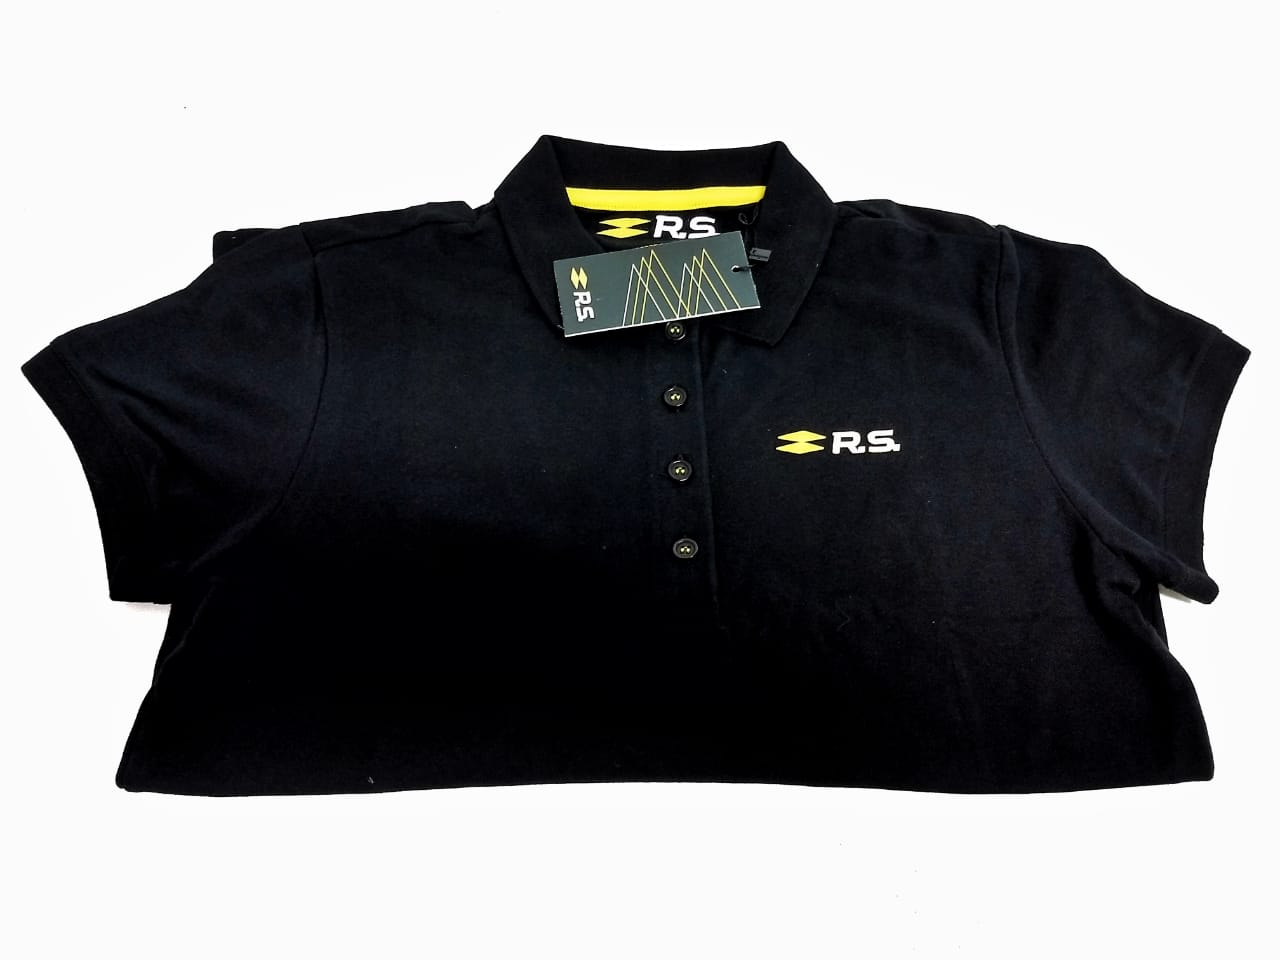 Camisa Polo P New Graphic Rs Feminino - Camiseta - Preto - S